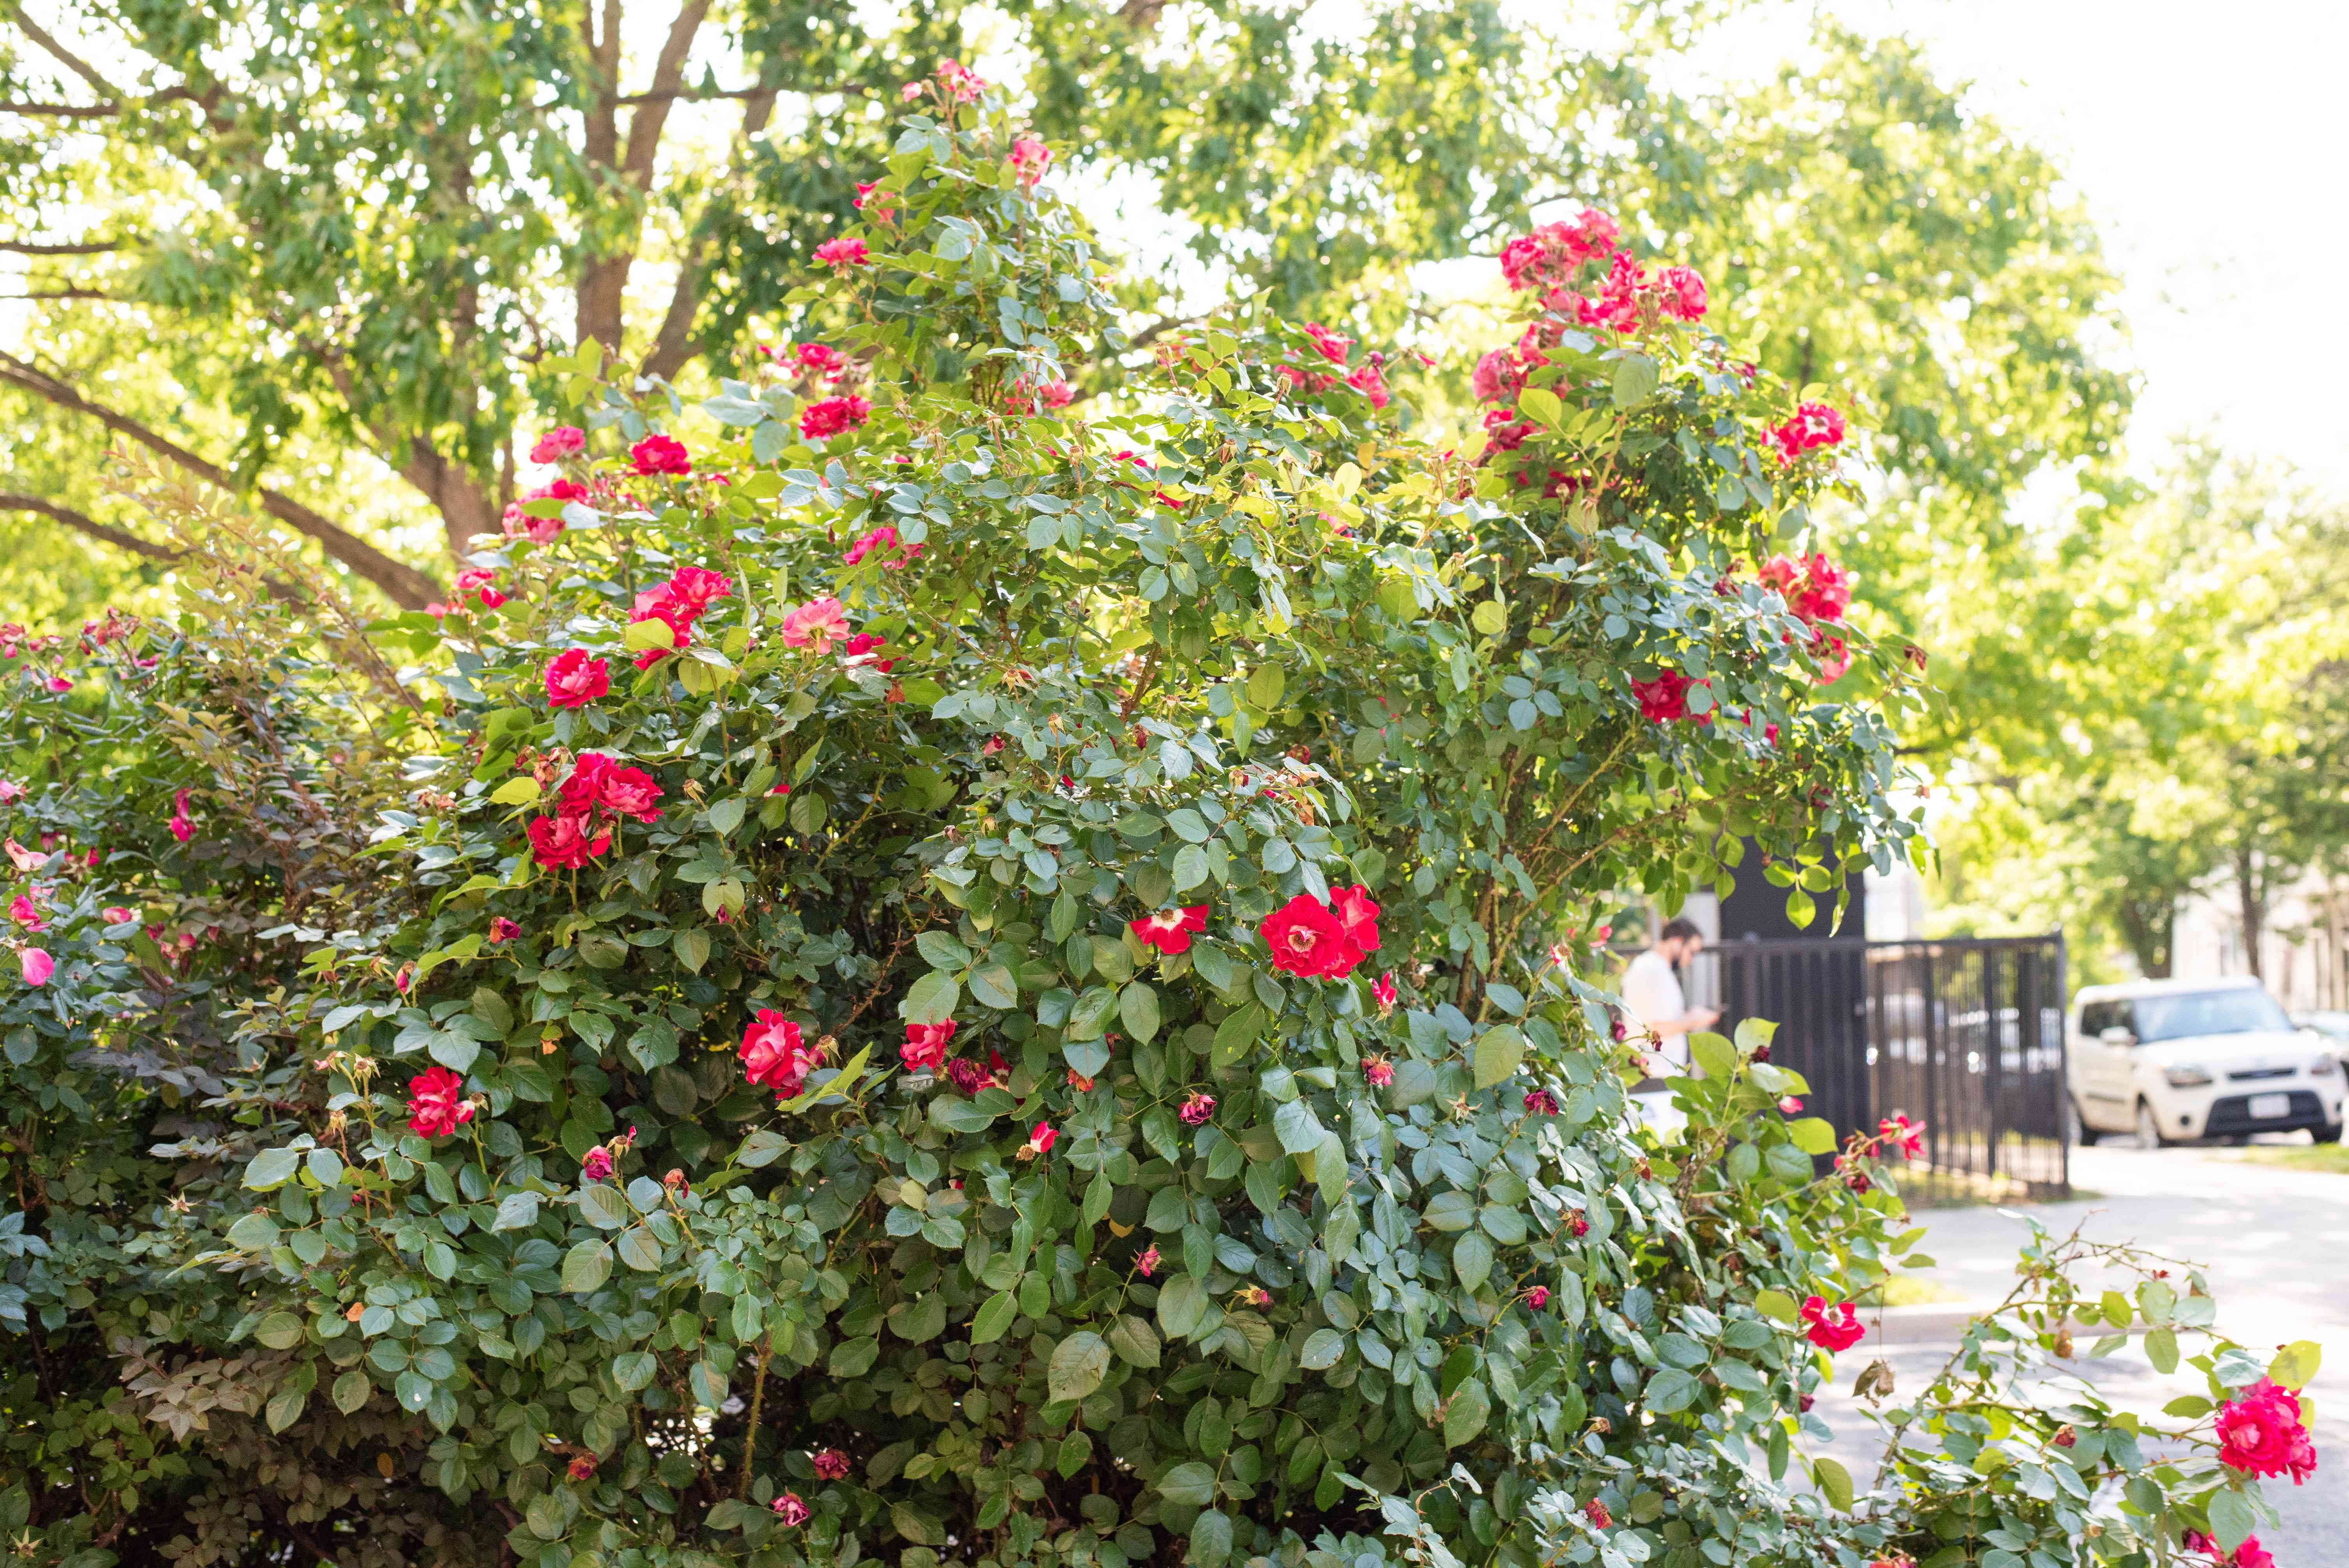 Candy oh rose bush with blue-green leaves and bright pink flowers near walkway